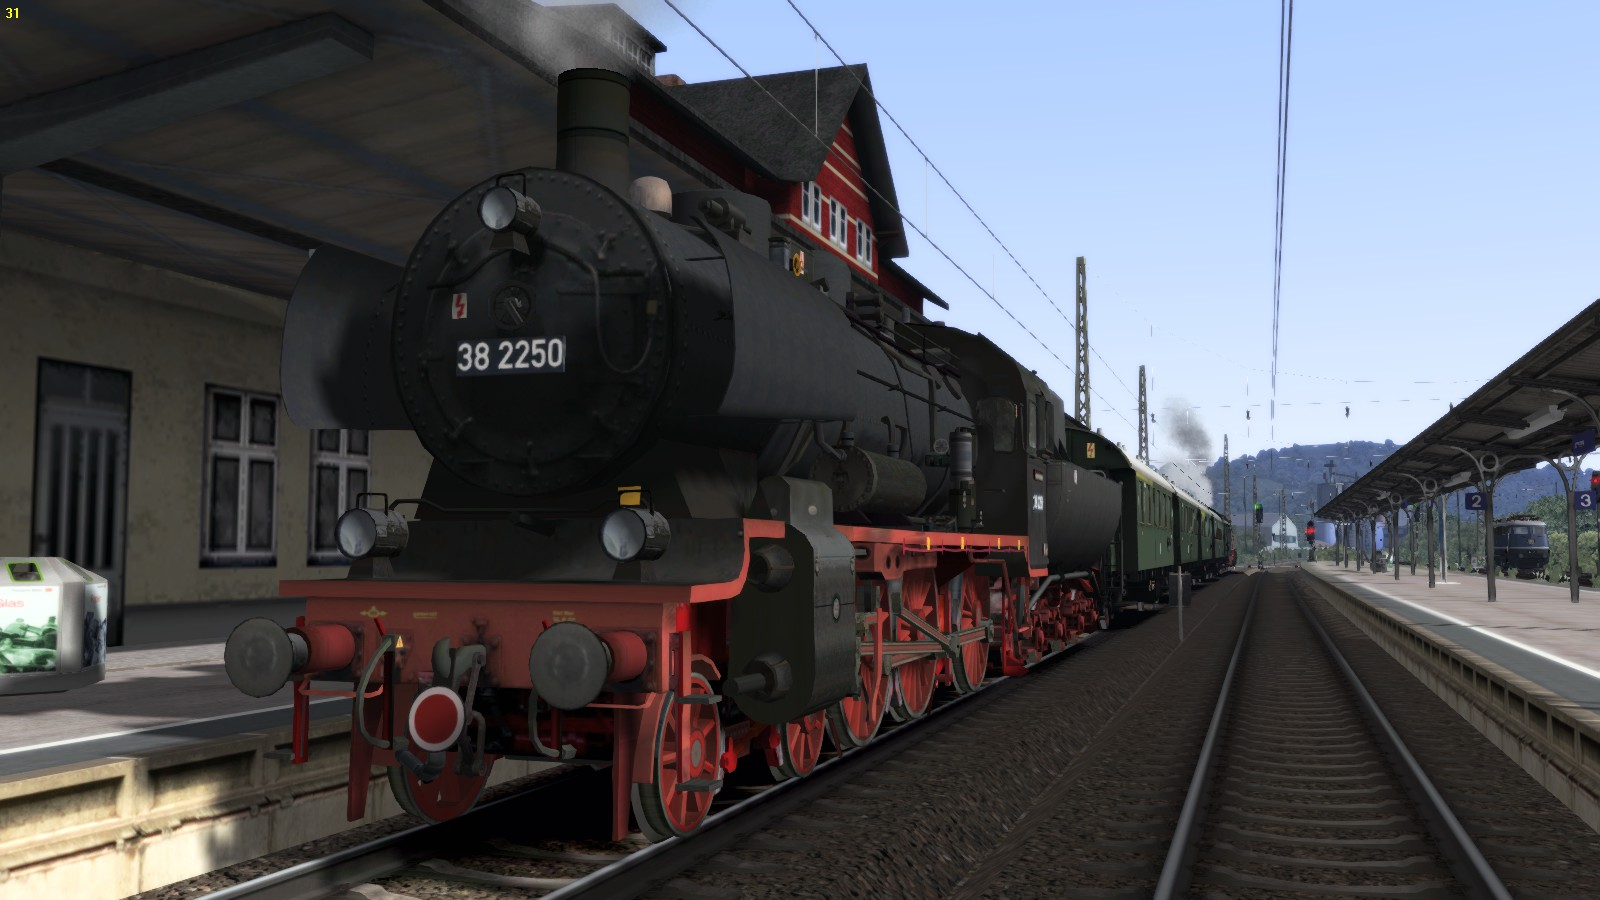 https://i0.wp.com/www.steamtrainsunlimited.com/wp-content/uploads/2016/06/2015-11-12_00024.jpg